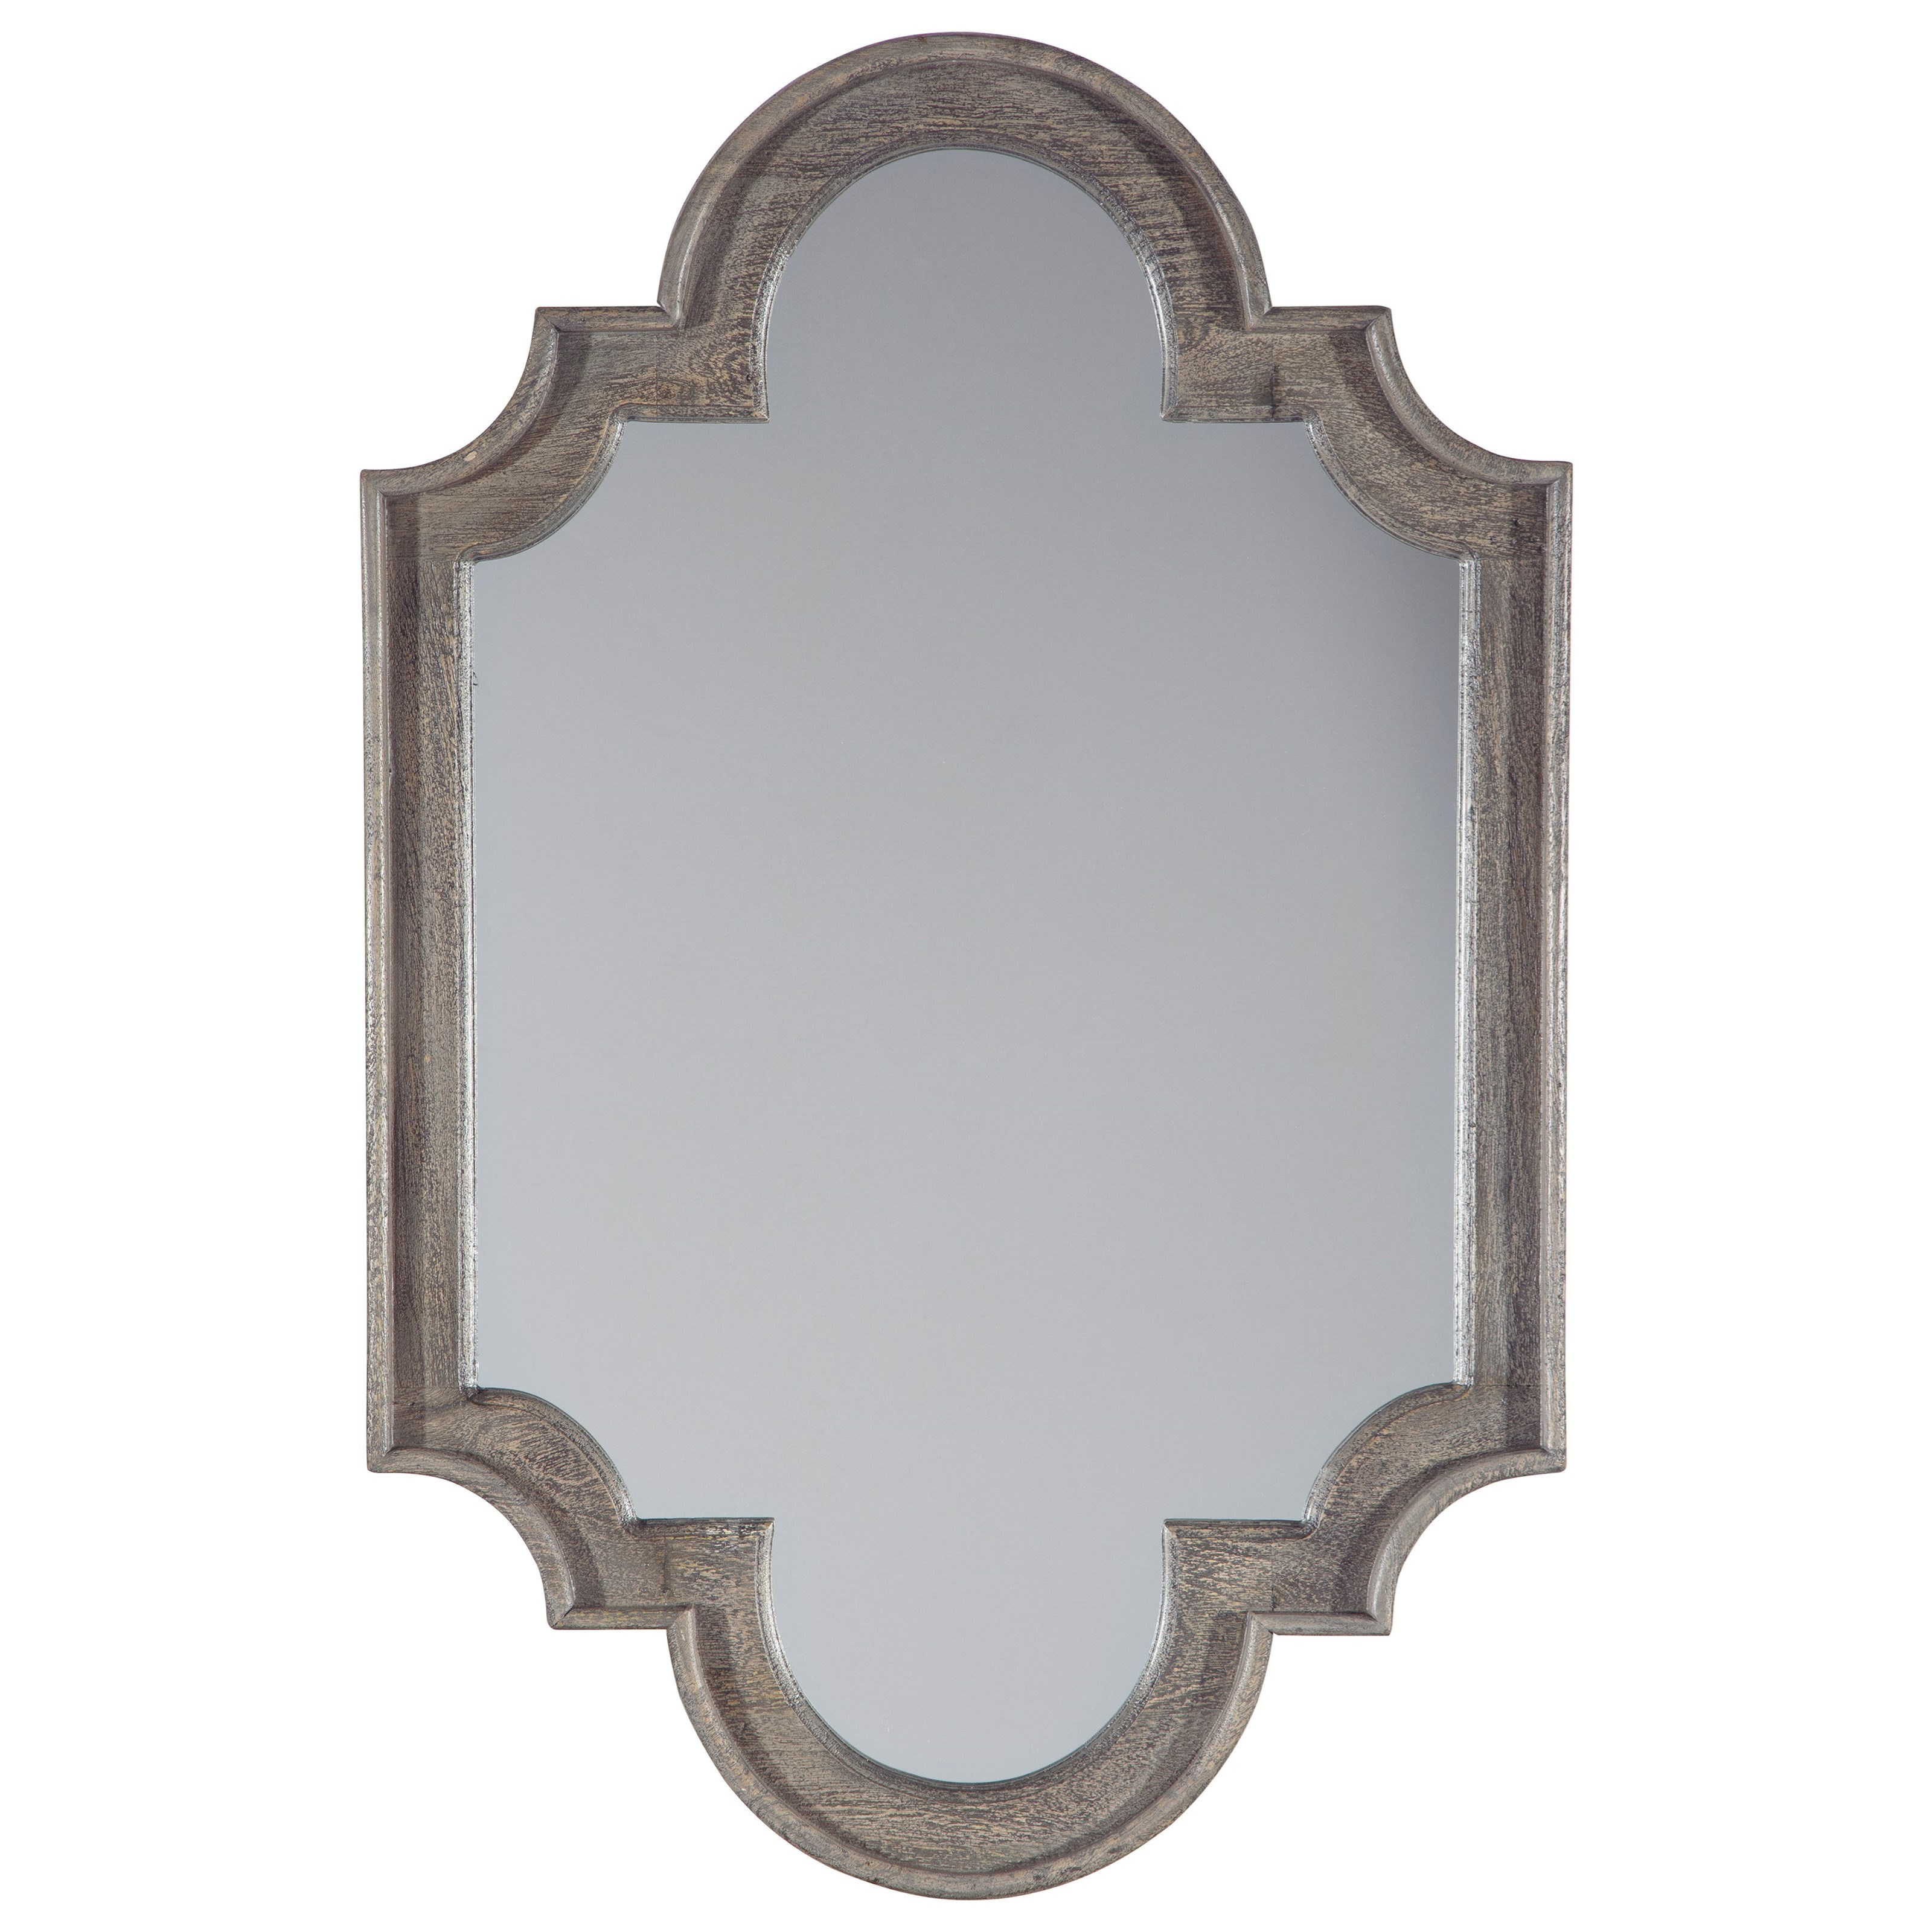 Accent Mirrors Williamette Antique Gray Accent Mirror by Signature Design by Ashley at Northeast Factory Direct